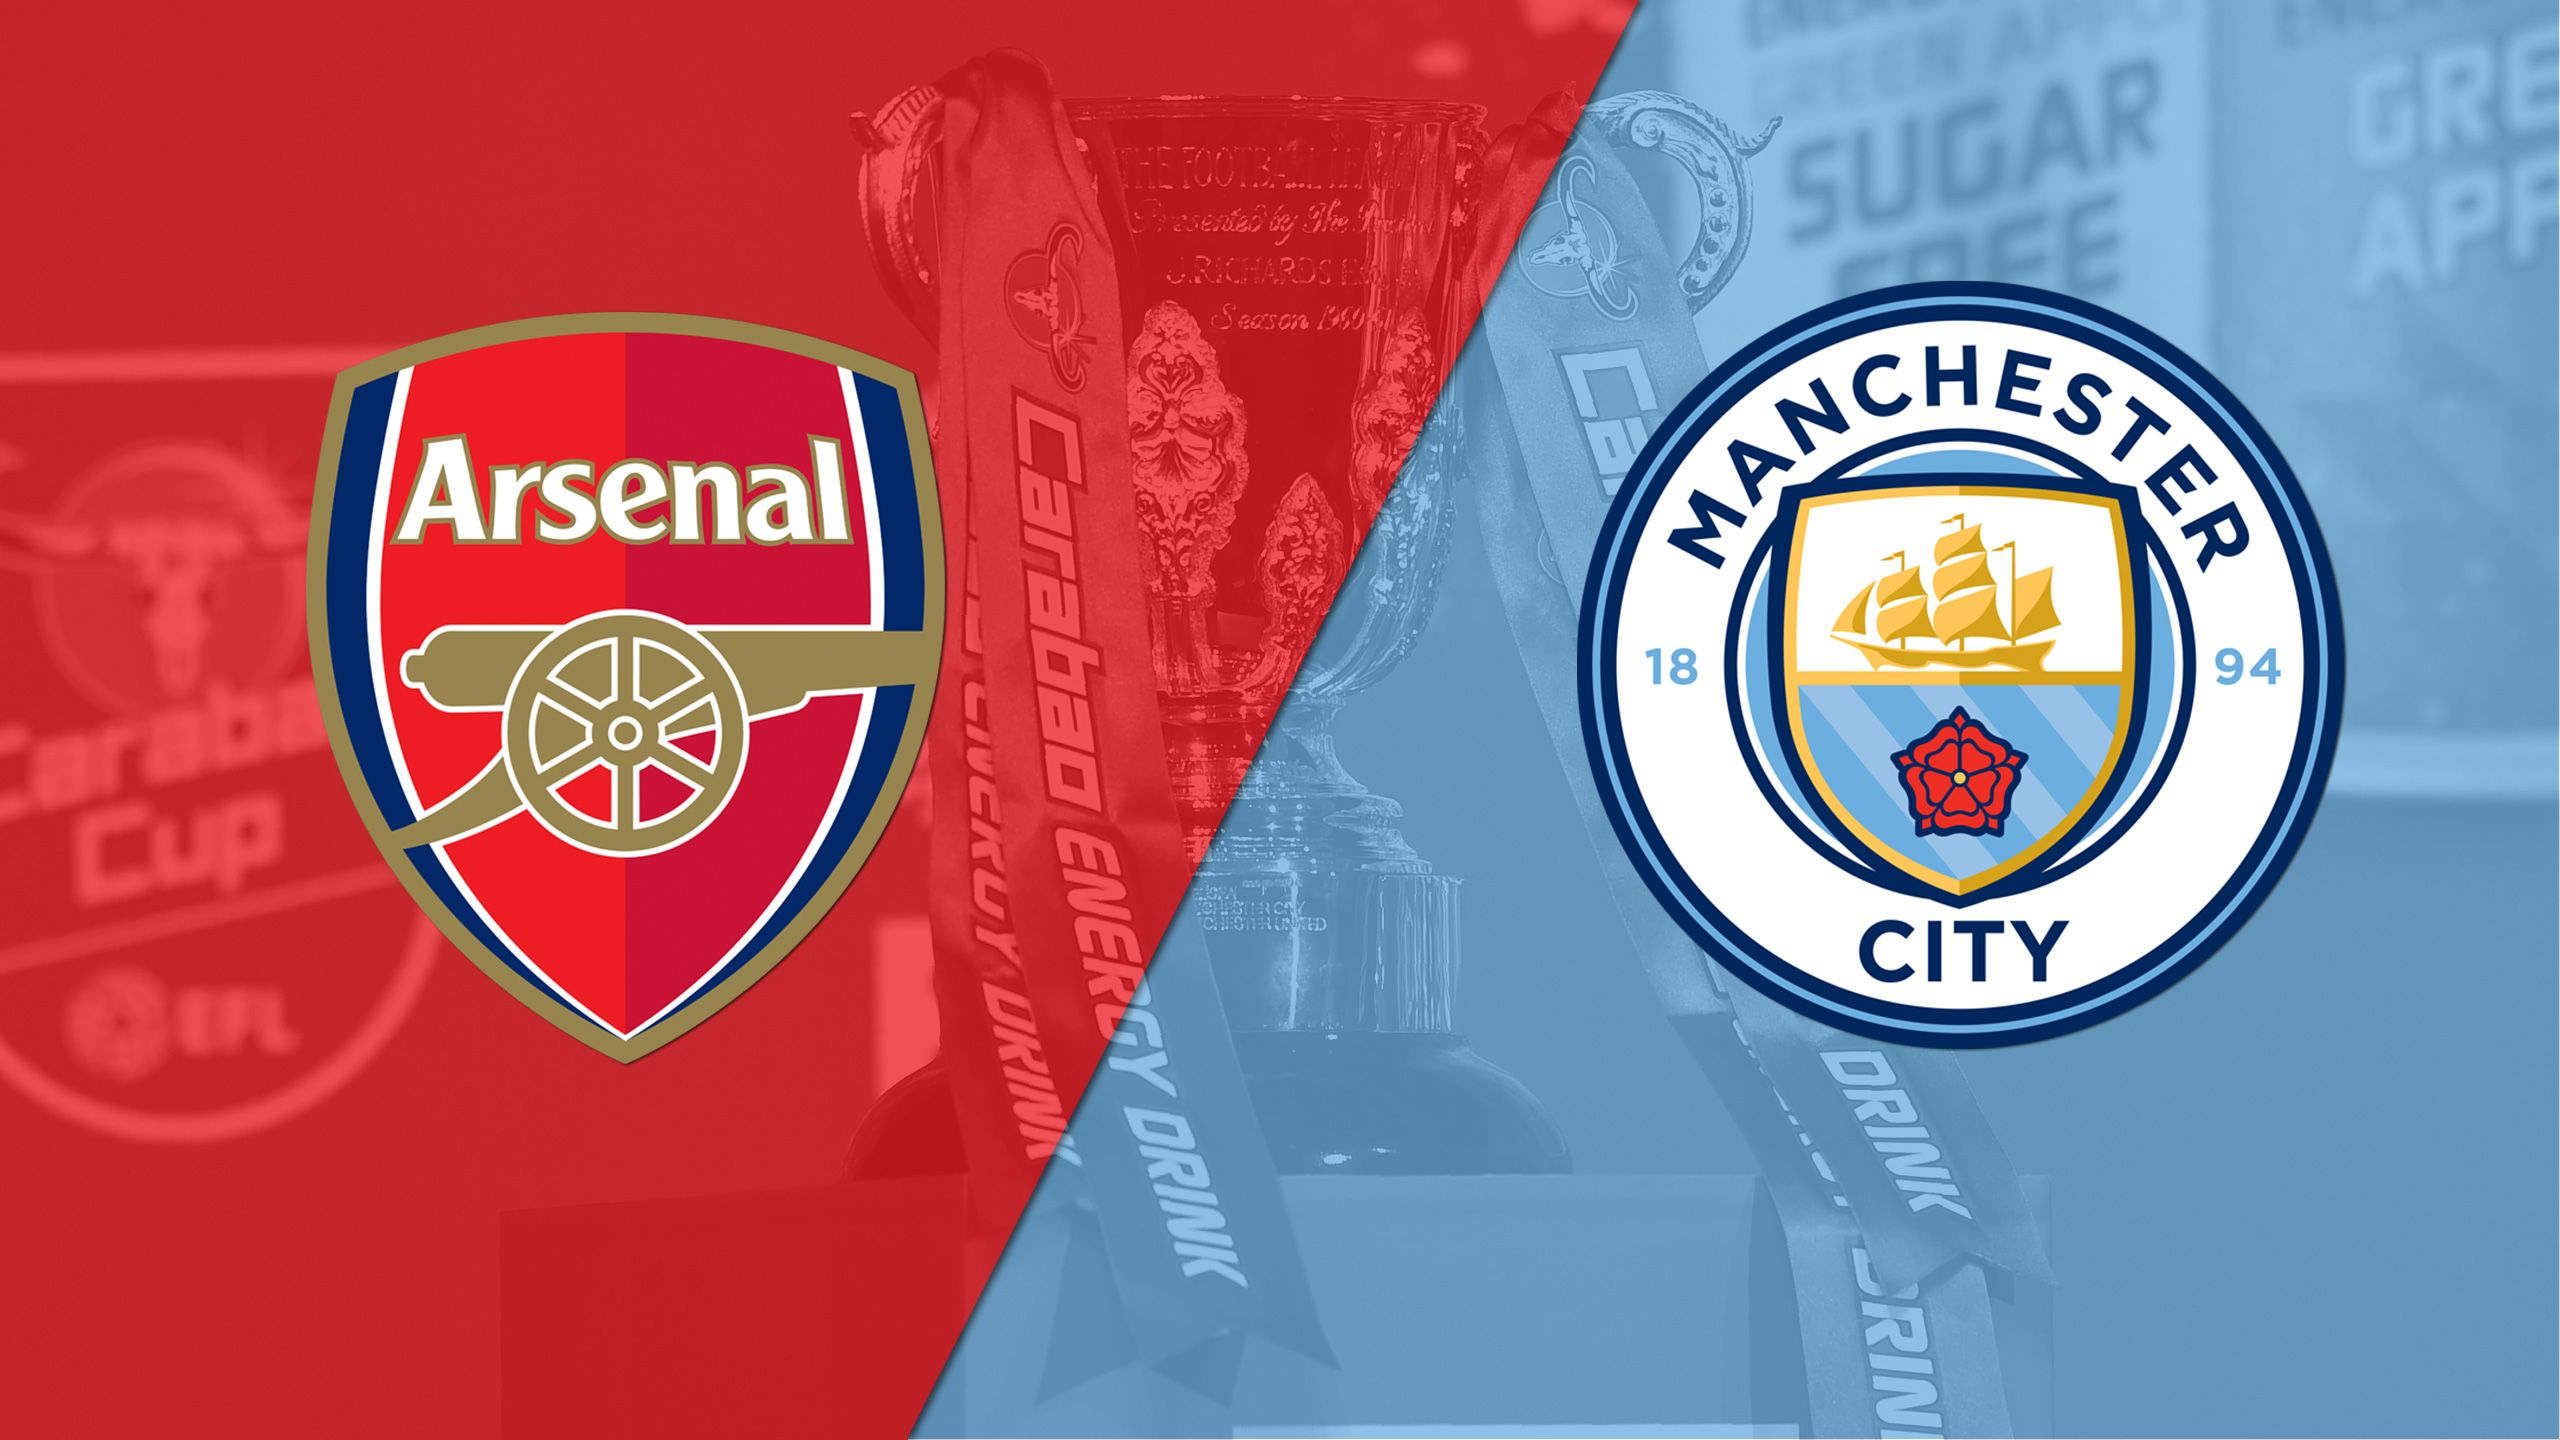 Arsenal vs. Manchester City (Final) (Carabao Cup)